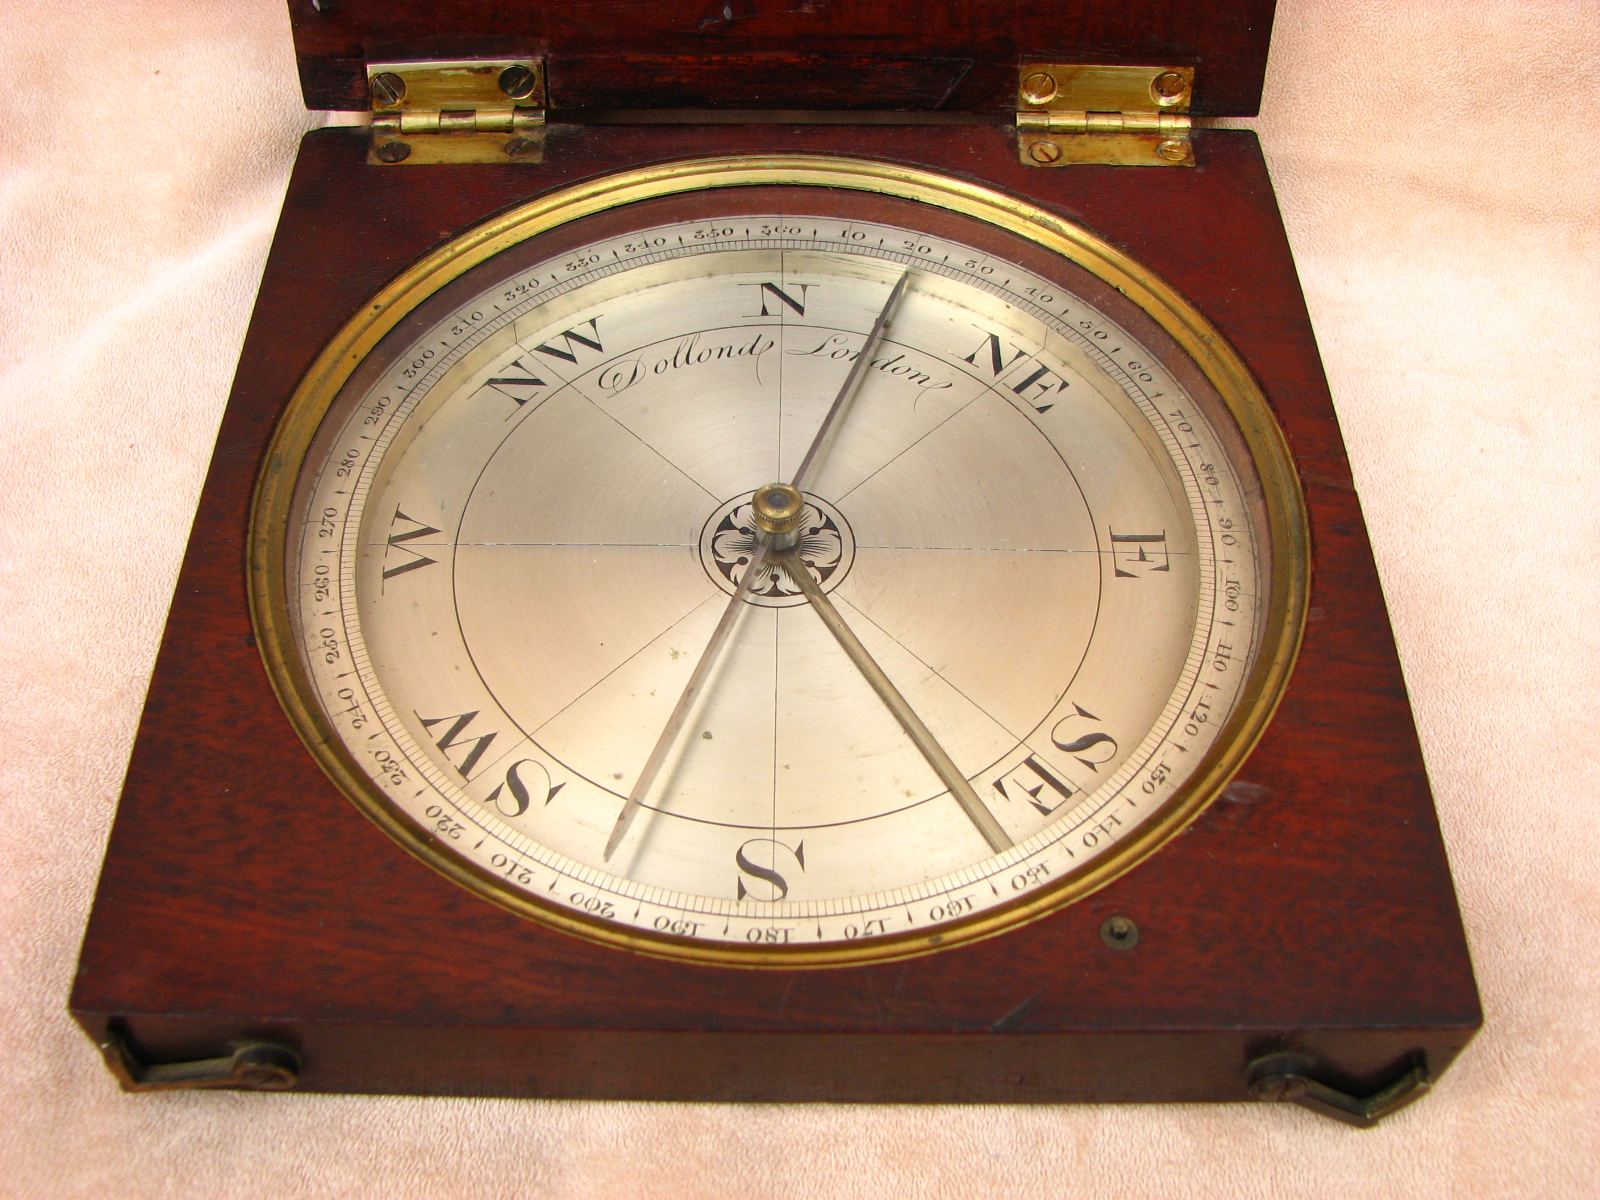 Large 19th century Dollond mahogany cased surveyors compass